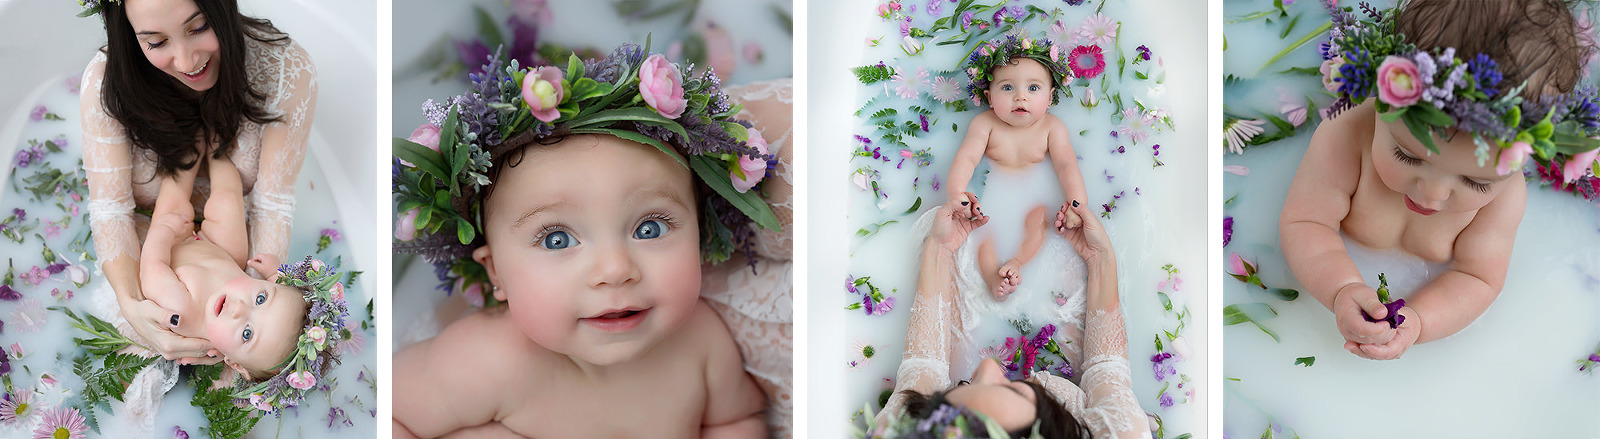 cute child getting photographed in bathtub surrounded by flowers